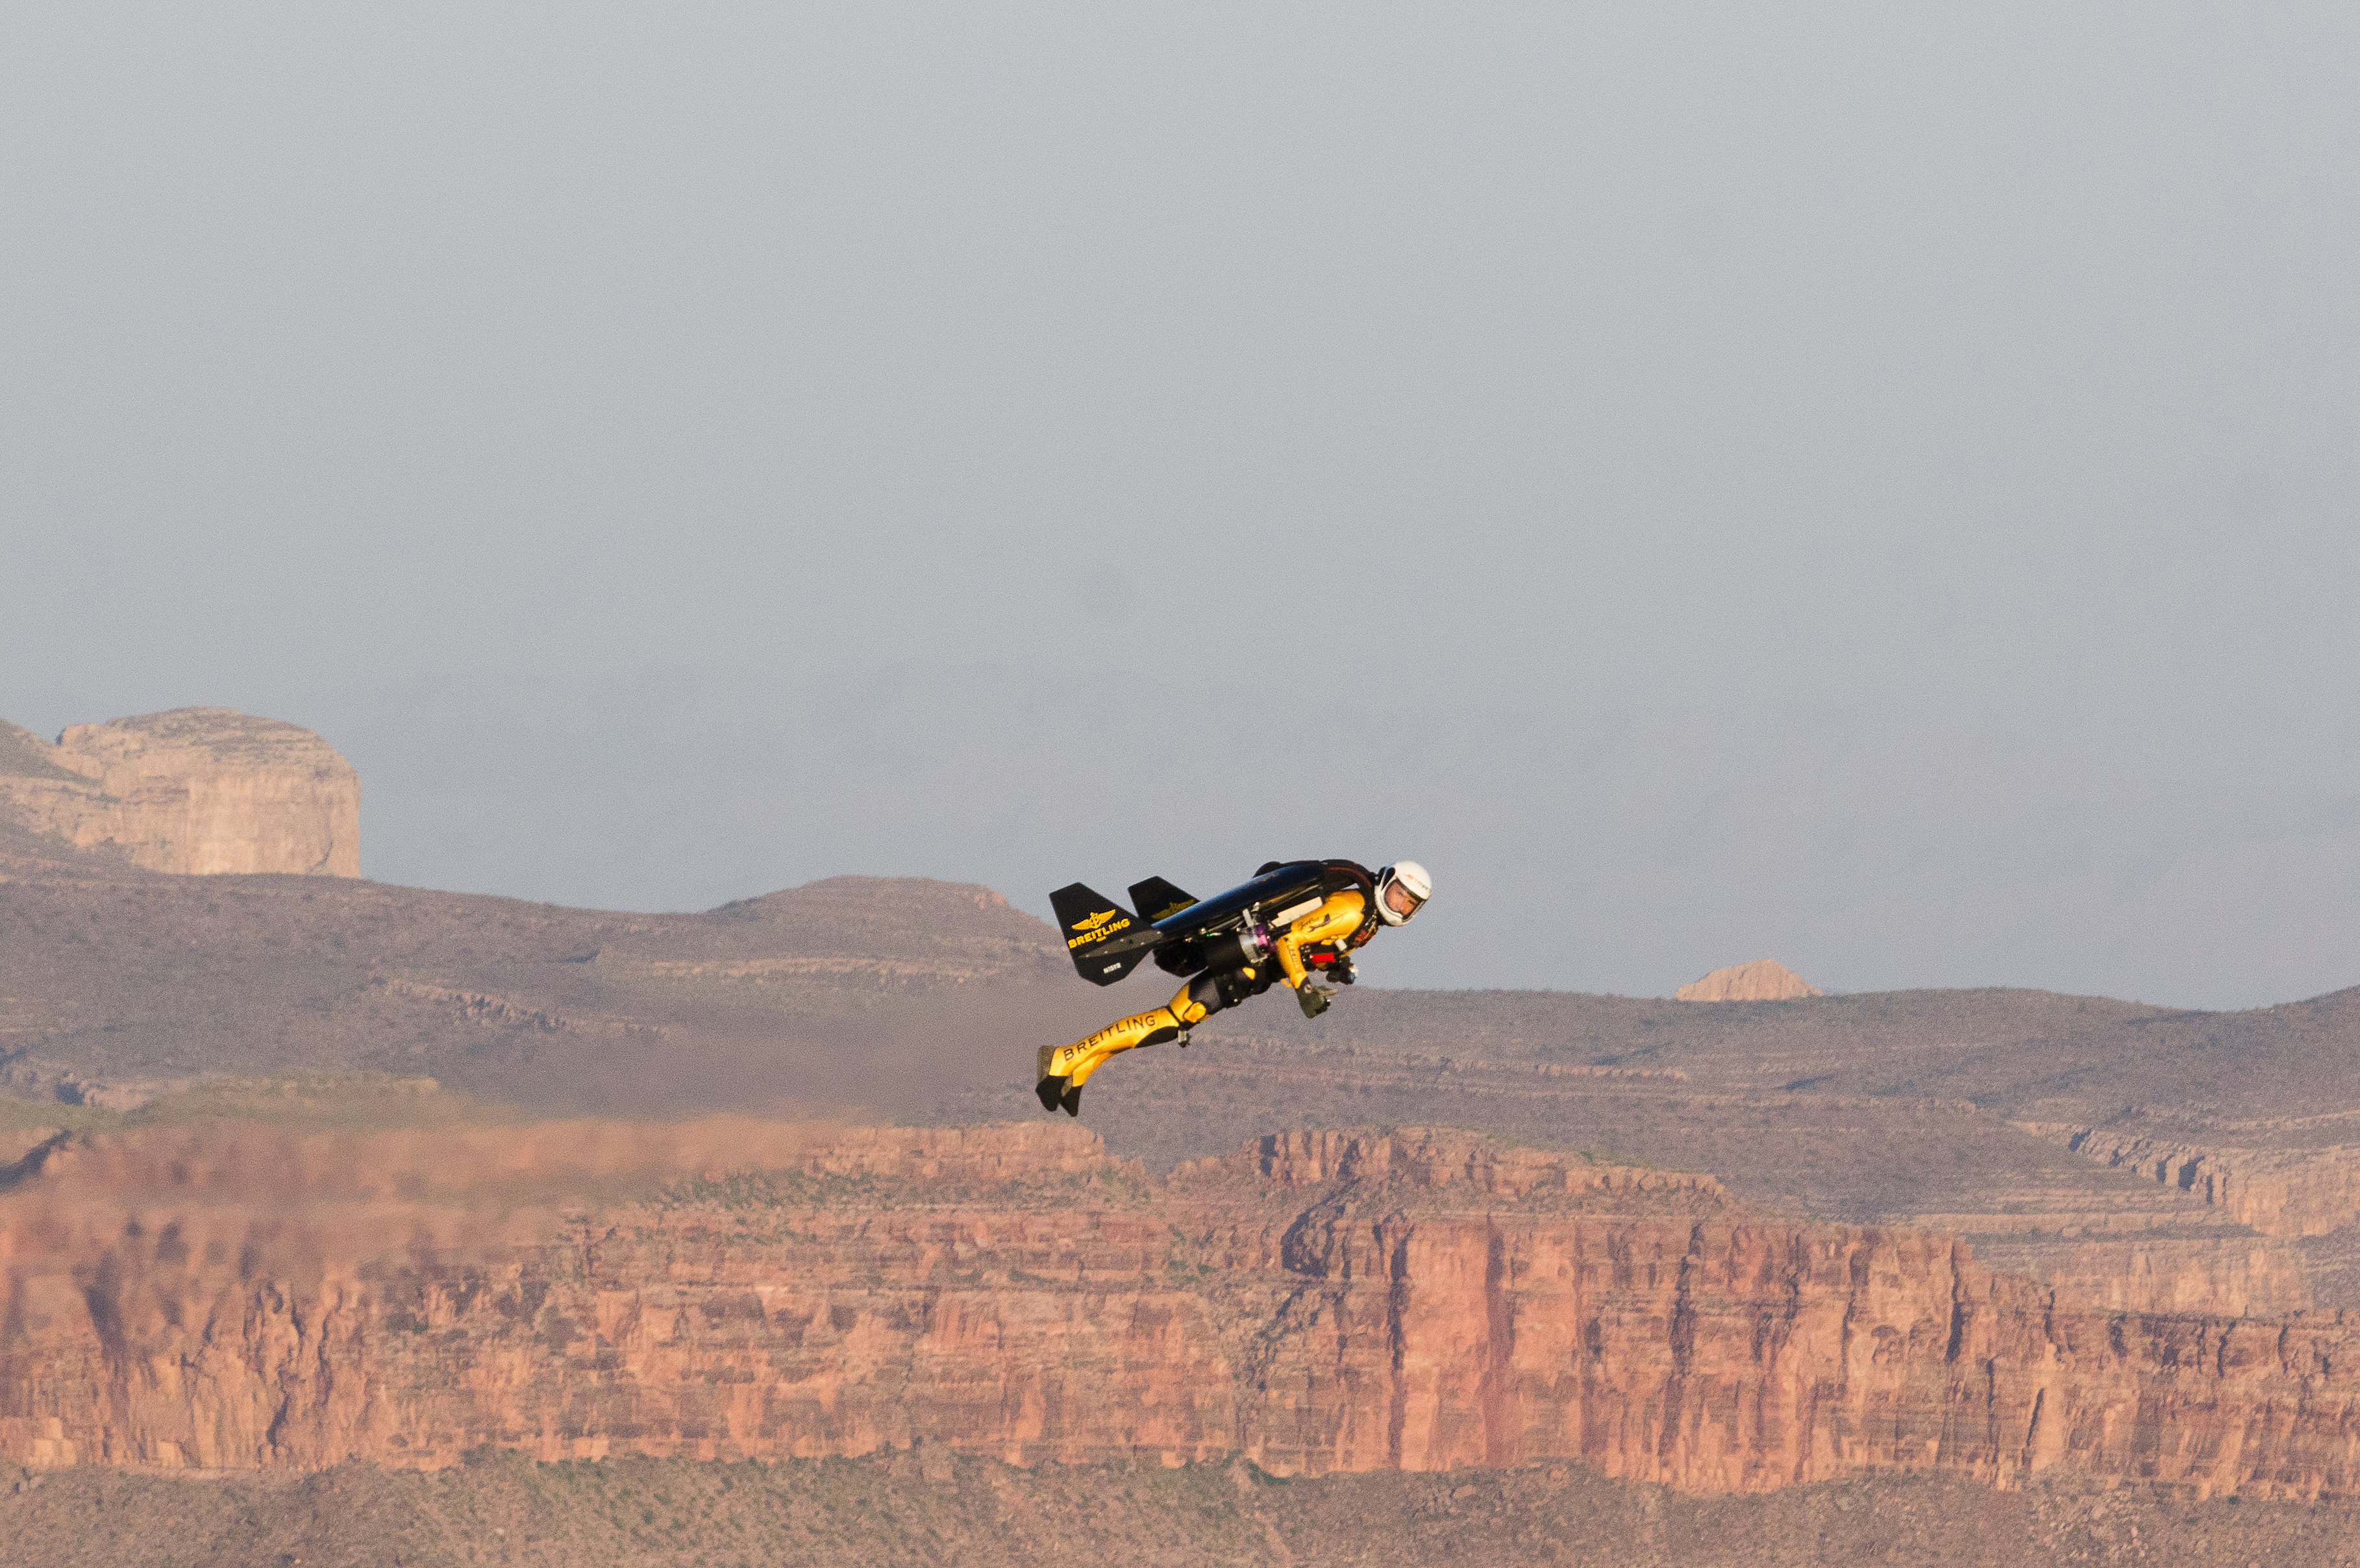 Breitling's Jetman soars across the Grand Canyon West